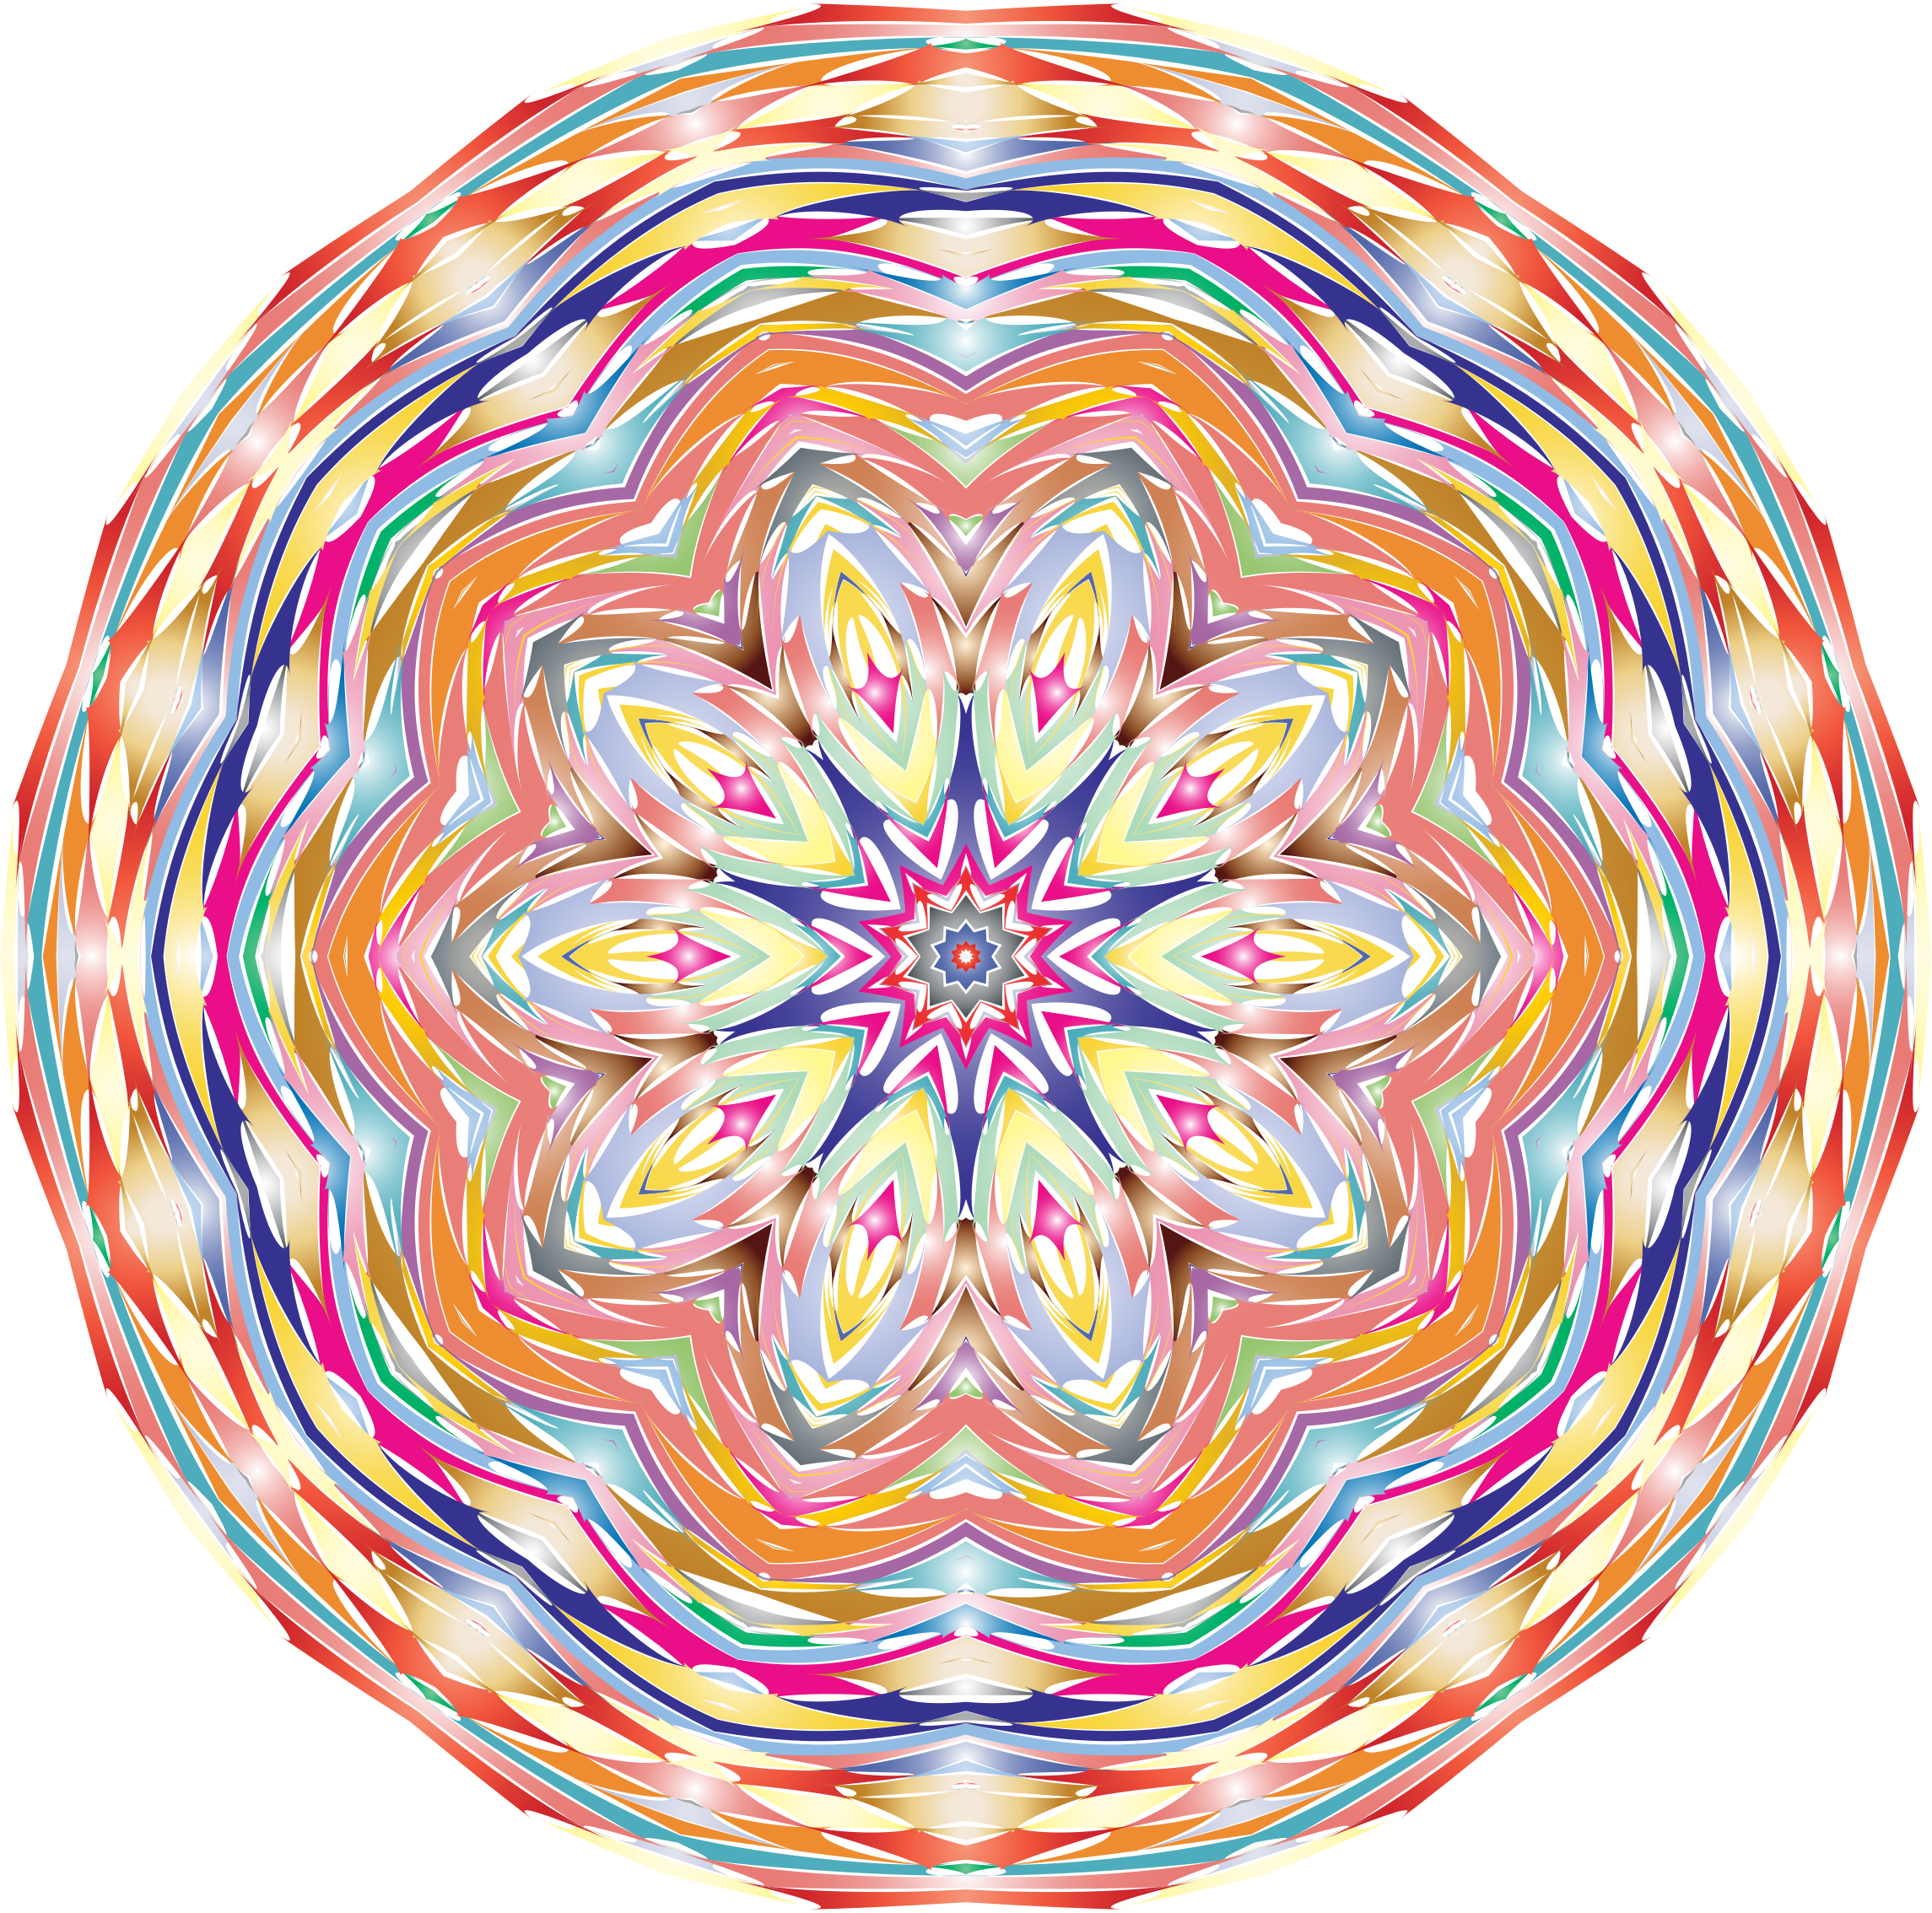 Kaleidoscopic Mandala 6 No Backgorund by GDJ